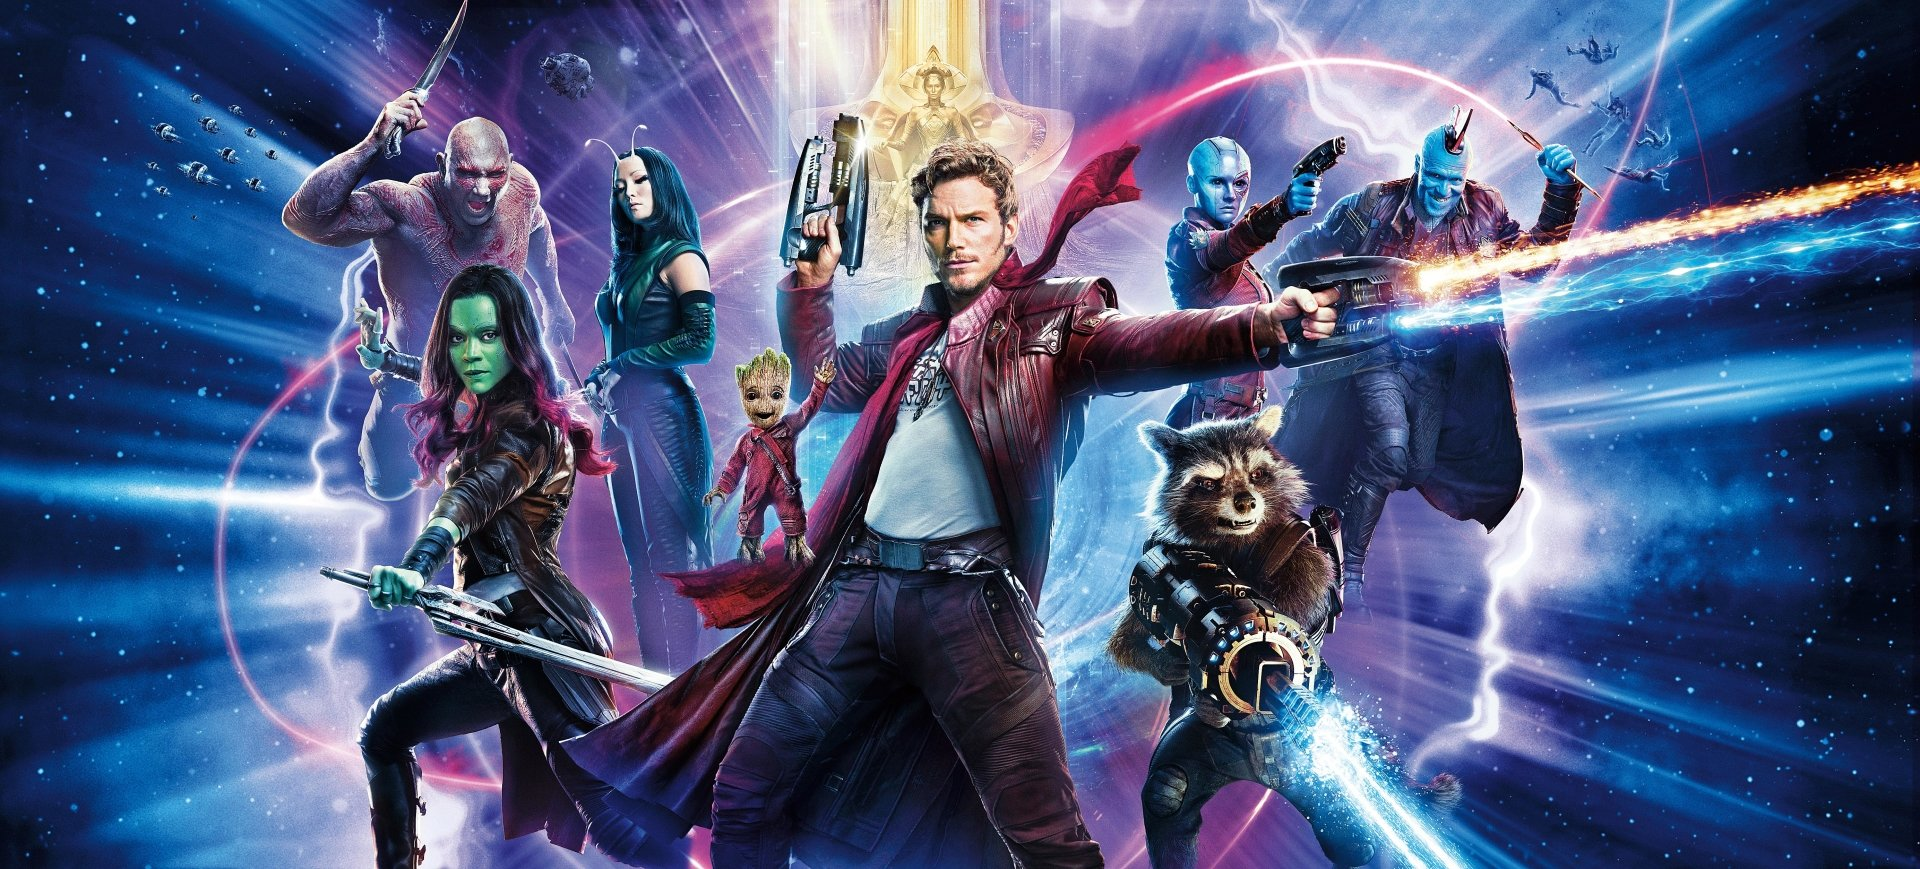 Movie - Guardians of the Galaxy Vol. 2  Chris Pratt Star Lord Peter Quill Zoe Saldana Gamora Vin Diesel Baby Groot Groot Rocket Raccoon Bradley Cooper Mantis (Marvel Comics) Pom Klementieff Yondu Udonta Michael Rooker Ayesha (Guardians Of The Galaxy) Elizabeth Debicki Nebula (Marvel Comics) Karen Gillan Drax The Destroyer Dave Bautista Guardians of the Galaxy Wallpaper